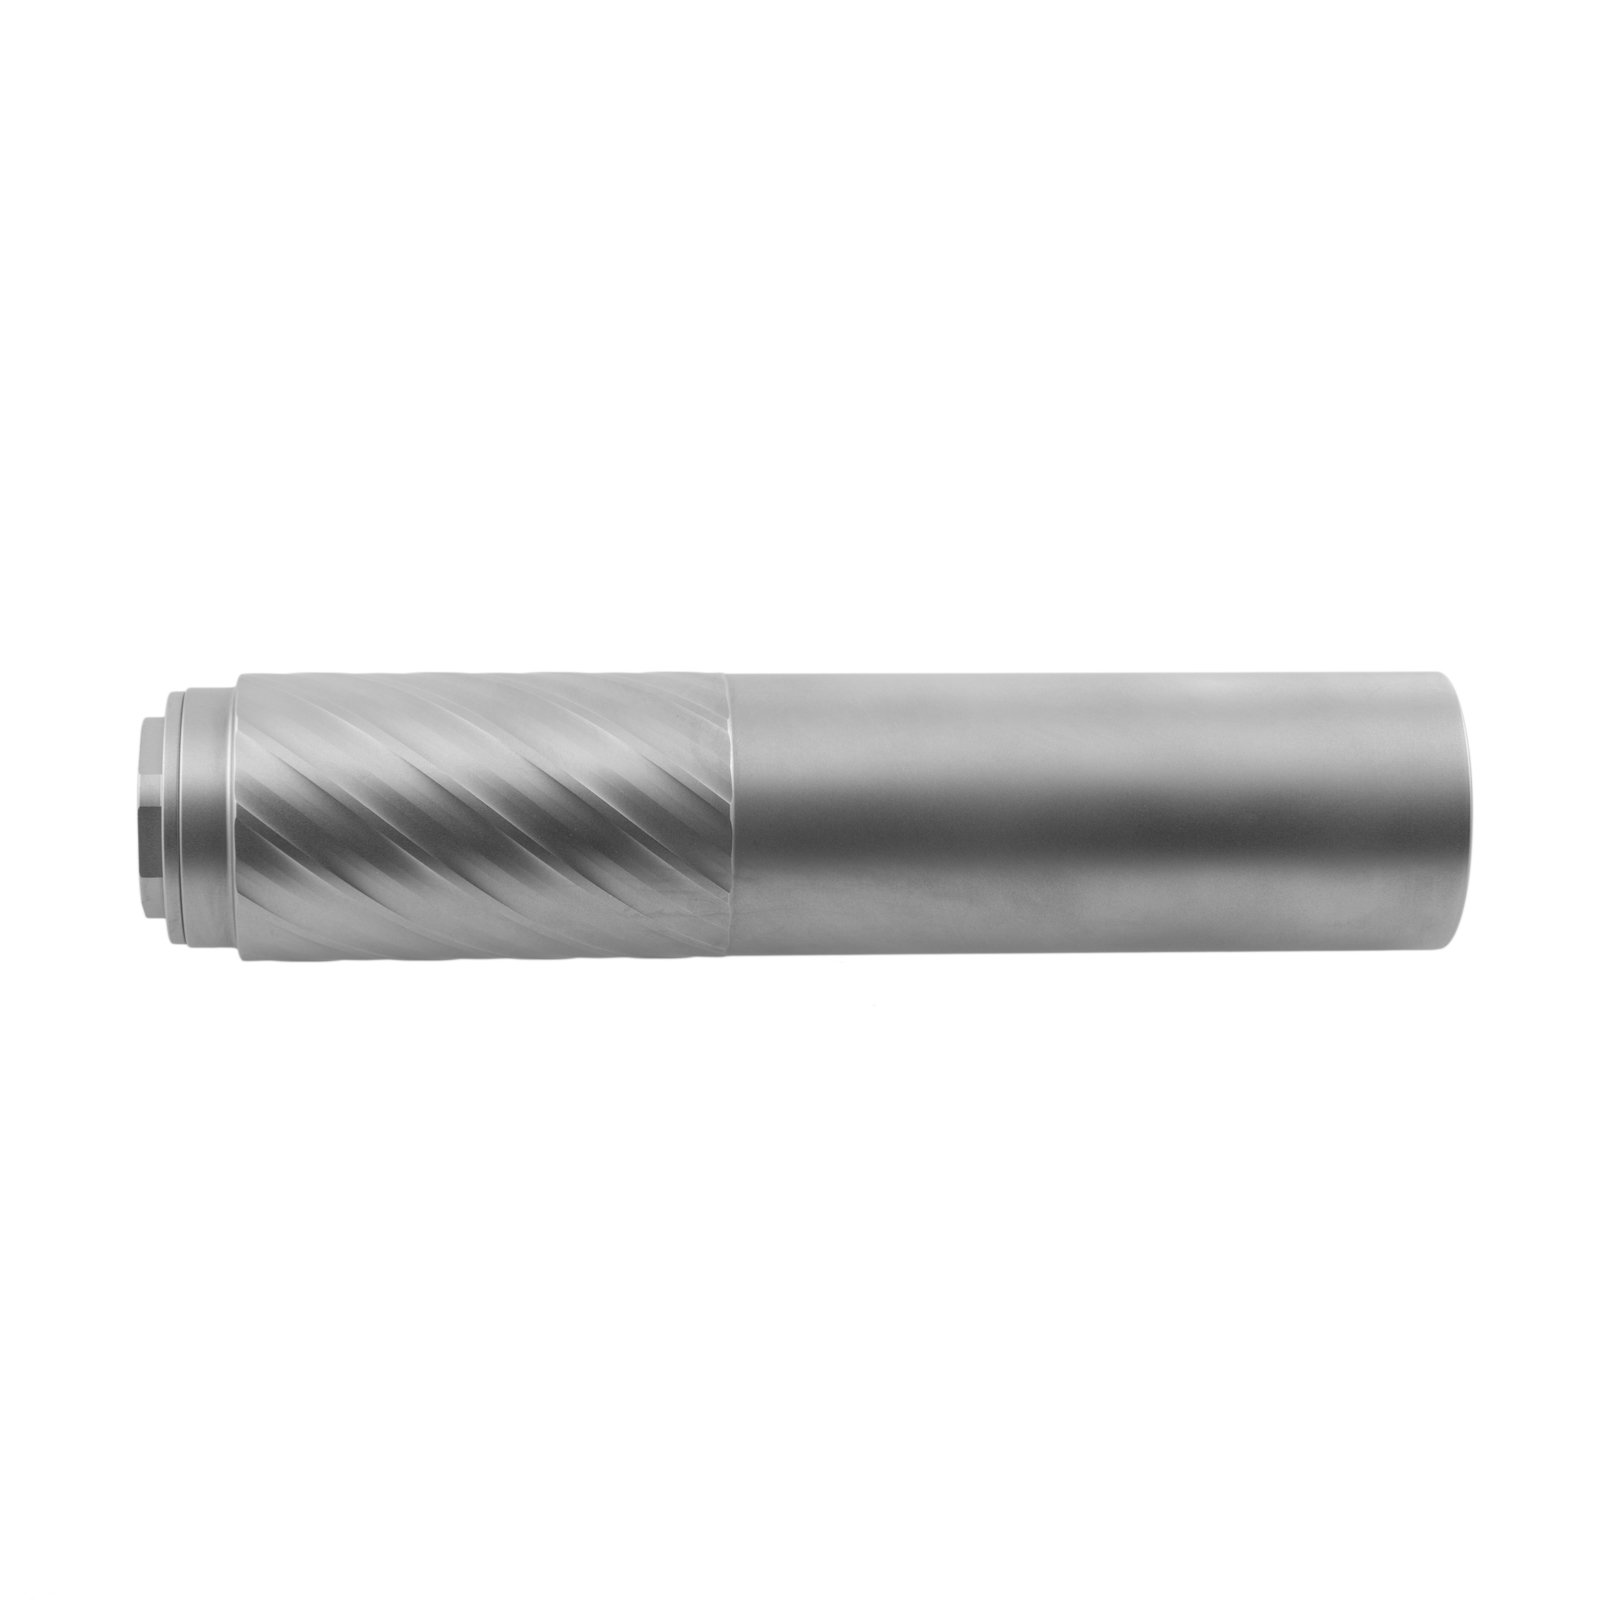 FIDELIS GEN3 7.62mm 300 Magnum Rifle Suppressor (7.8in Long)